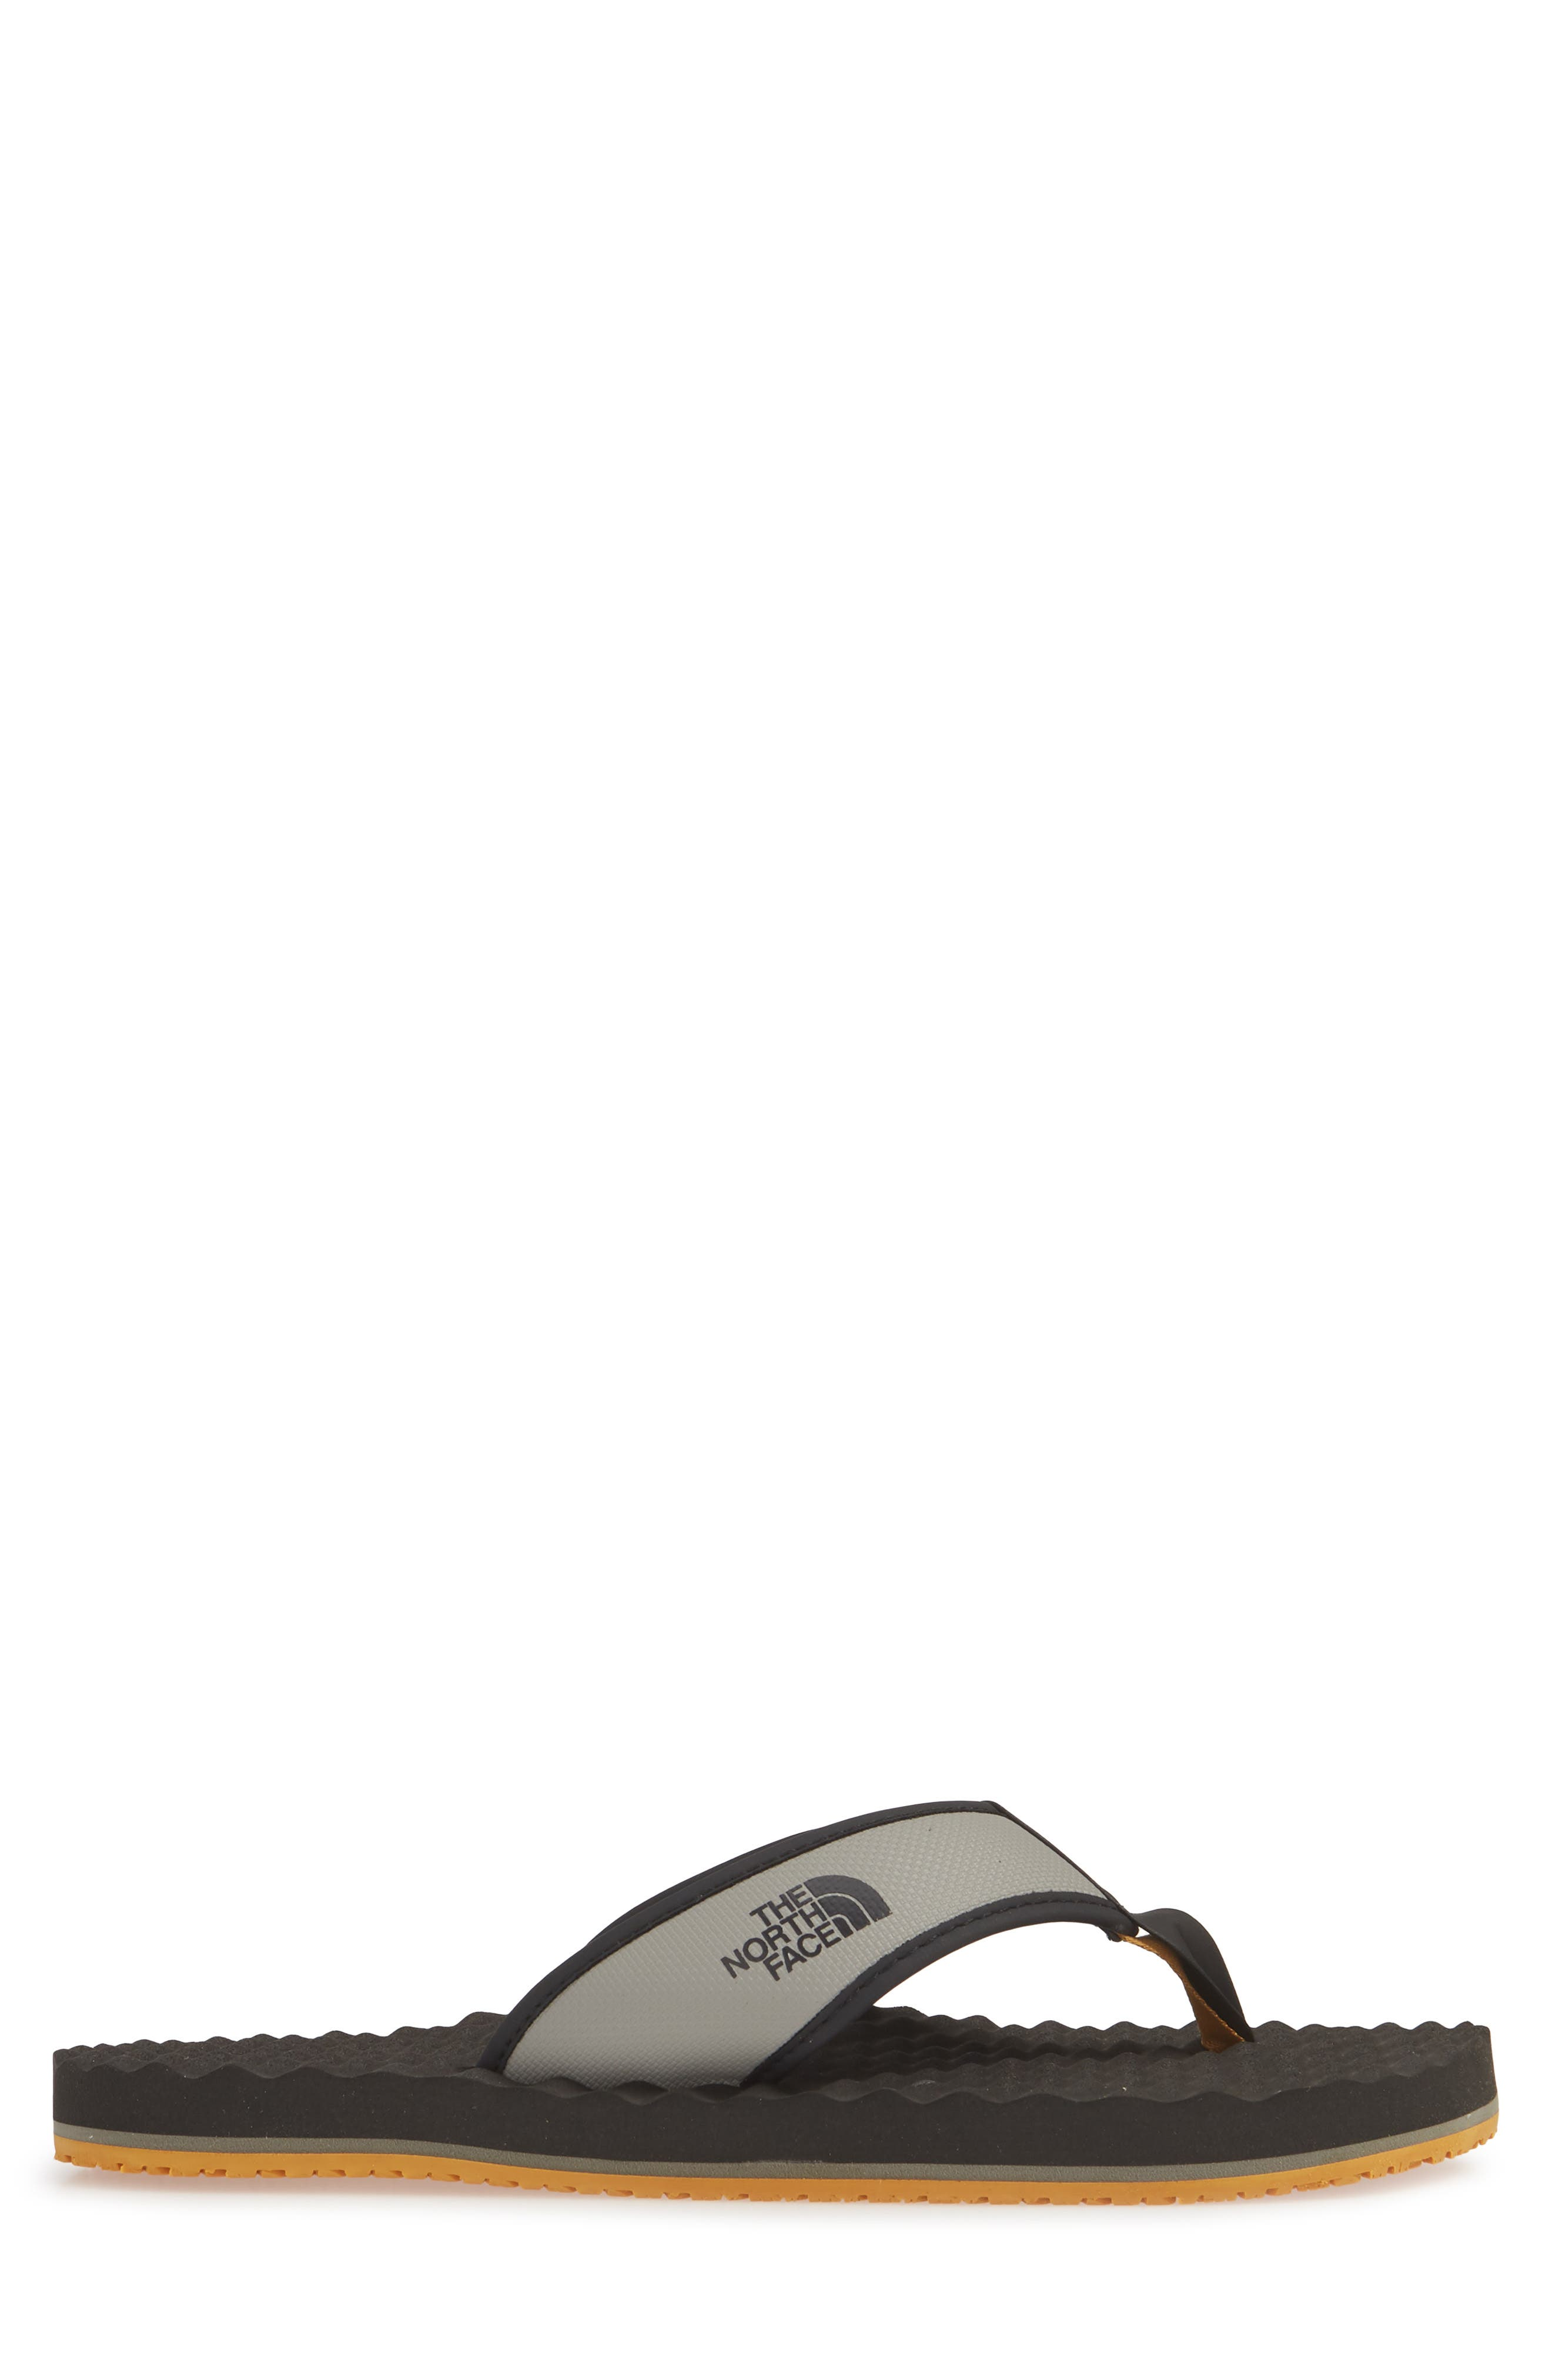 THE NORTH FACE, 'Base Camp' Water Friendly Flip Flop, Alternate thumbnail 3, color, 021